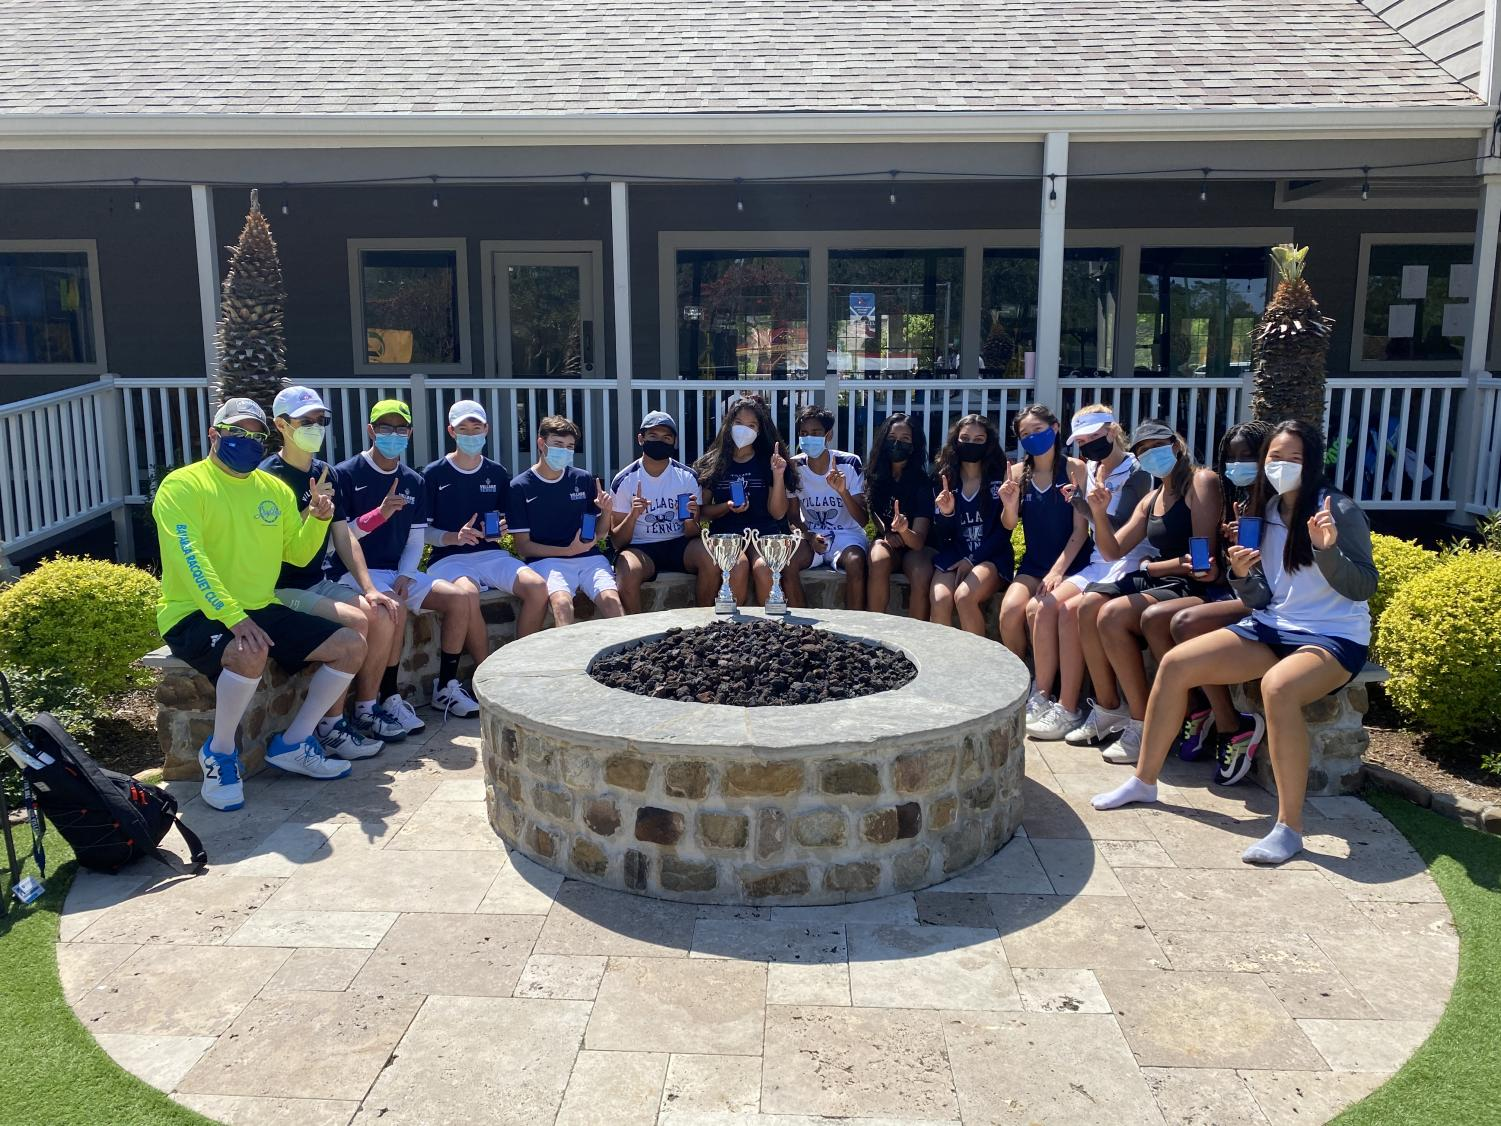 At the TAPPS District tournament, the girls were finalists, placing second, and the boys became champions, winning the tournament.